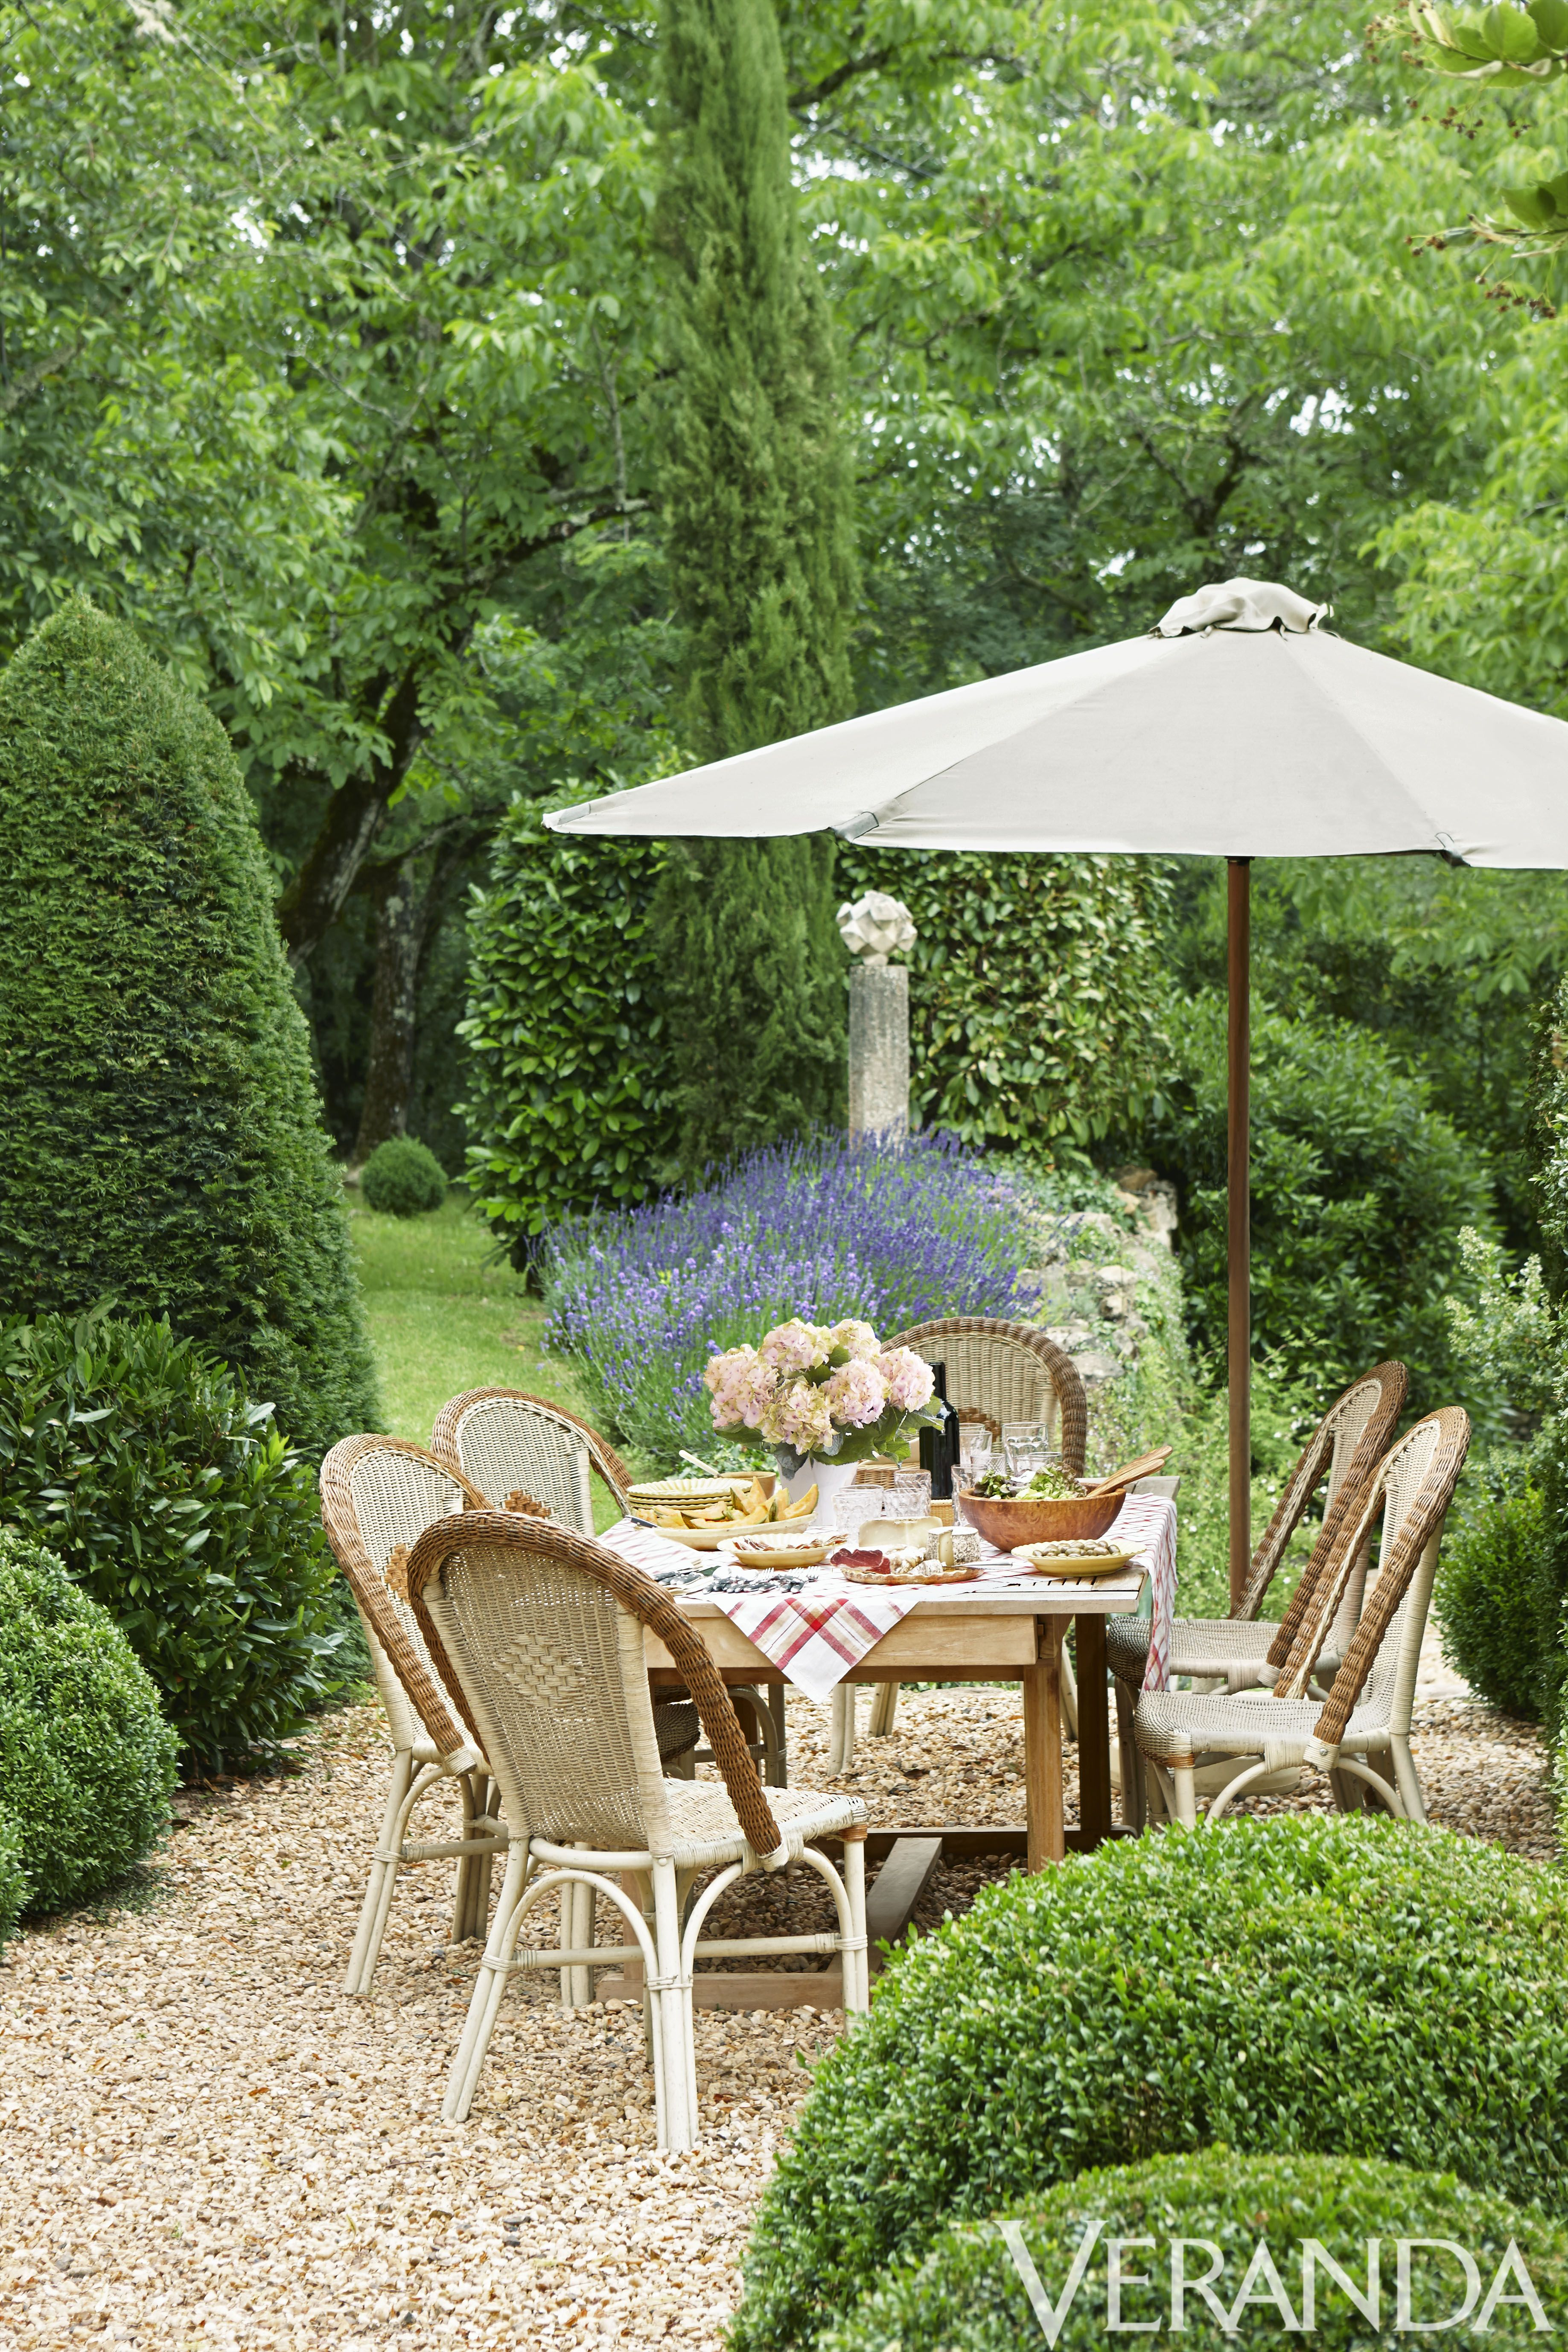 The Only Thing We Love More Than Beautiful French Decor, Is A Romantic French  Garden. Get Lost In These 28 Lush Outdoor Spaces That Have That A Certain  Je ...